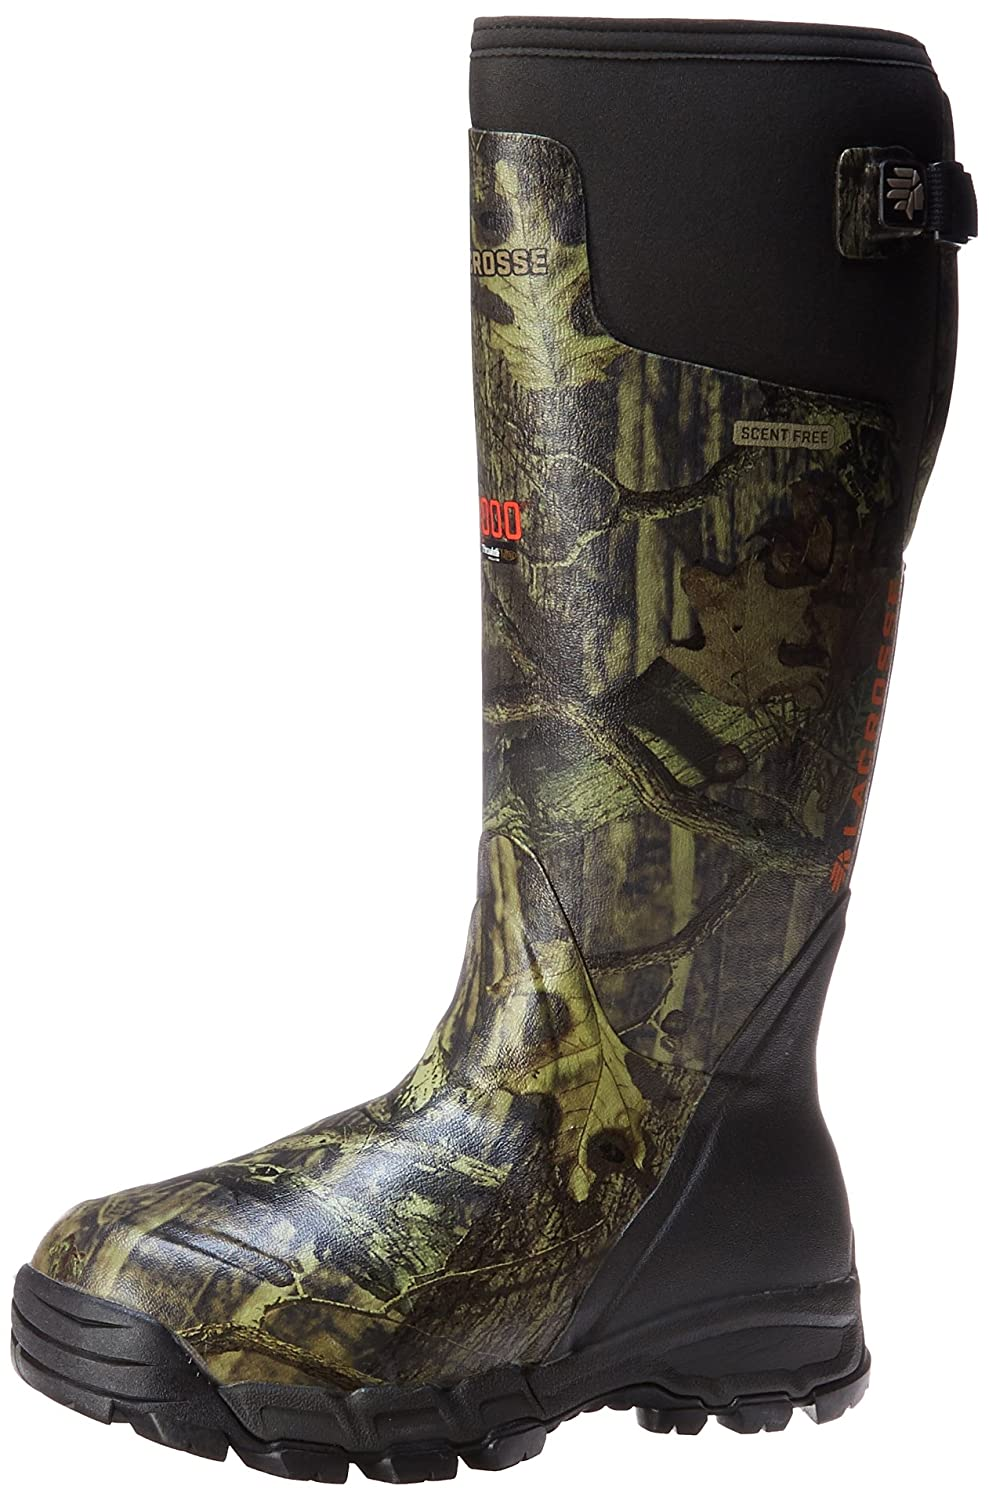 LaCrosse Men's Alphaburly Pro 18 1000G Hunting Shoes LaCrosse Footwear Inc.